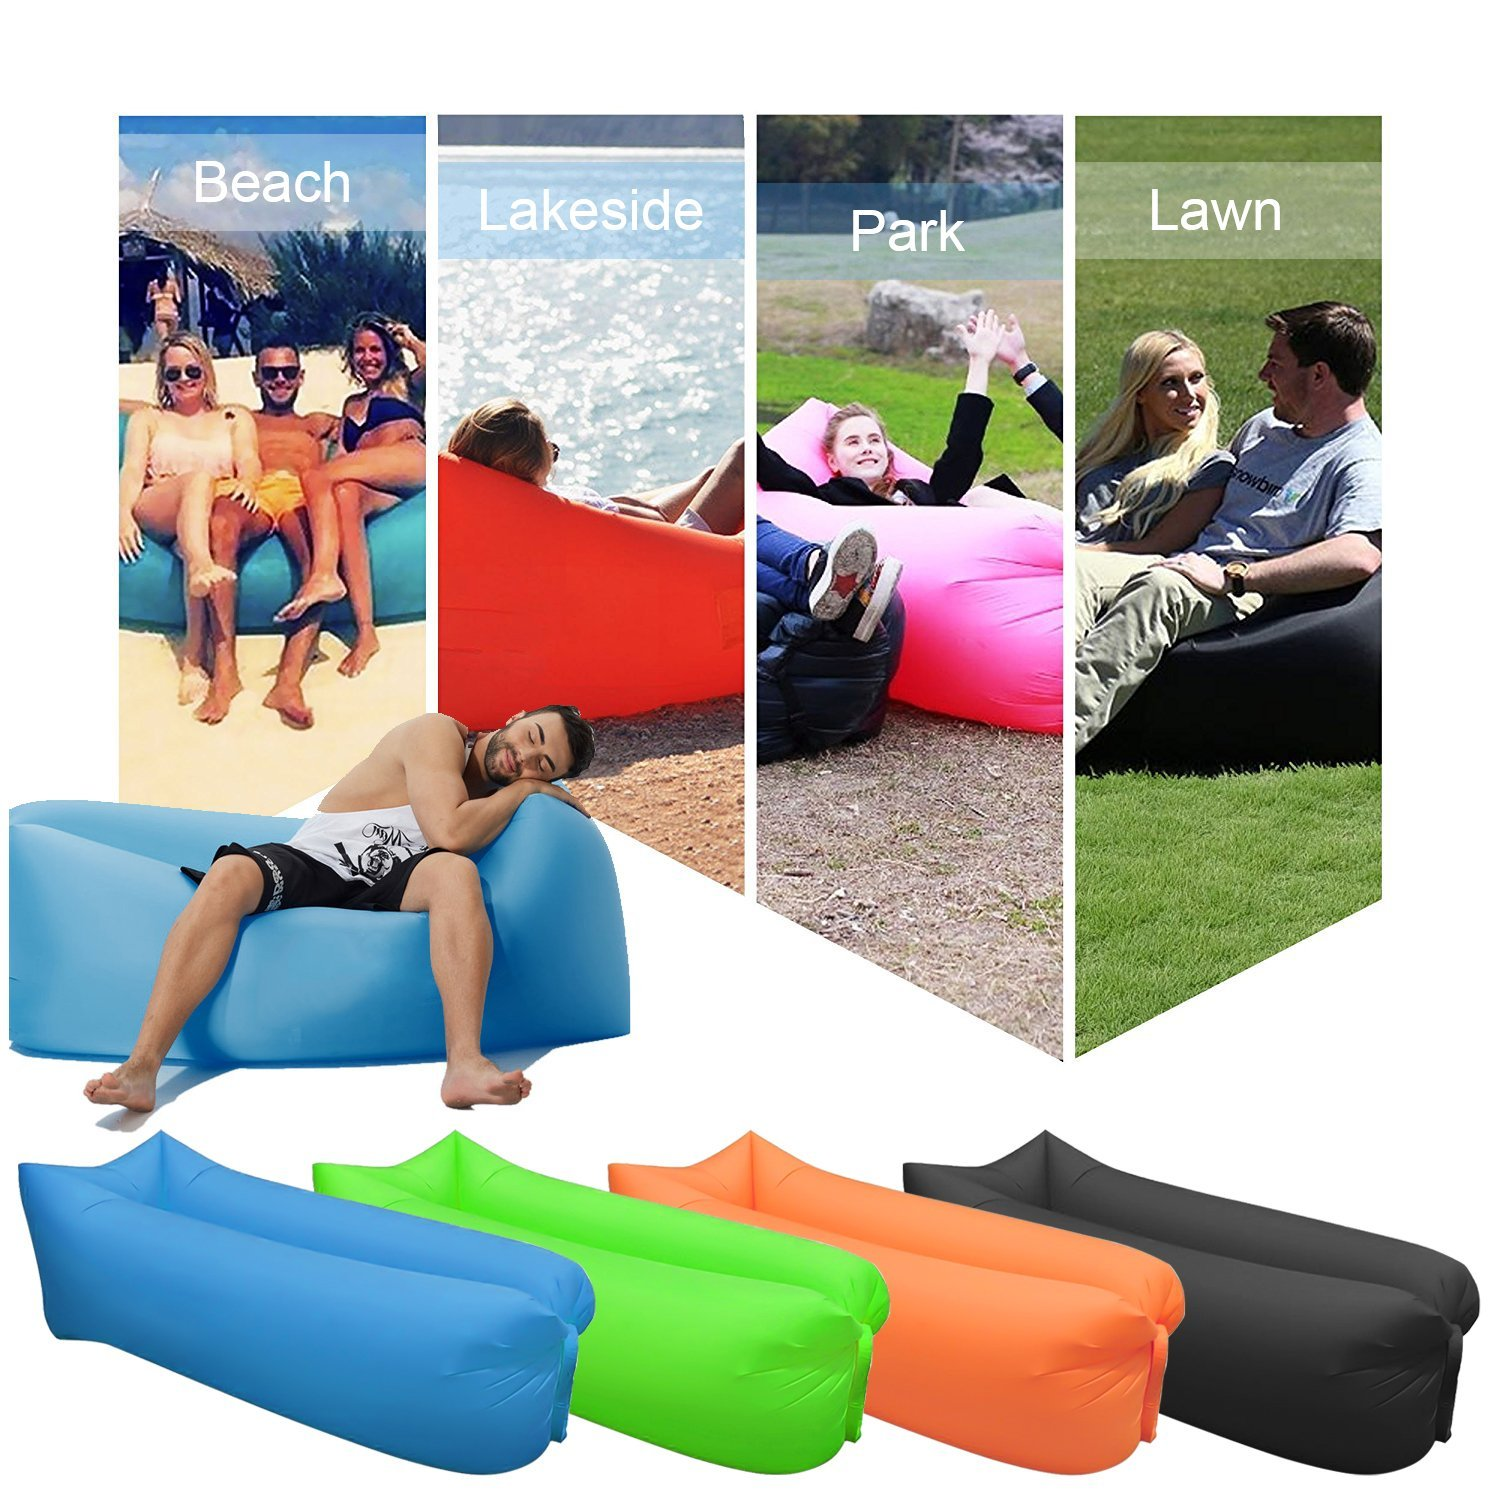 Inflatable lounger festival all terrain amazon